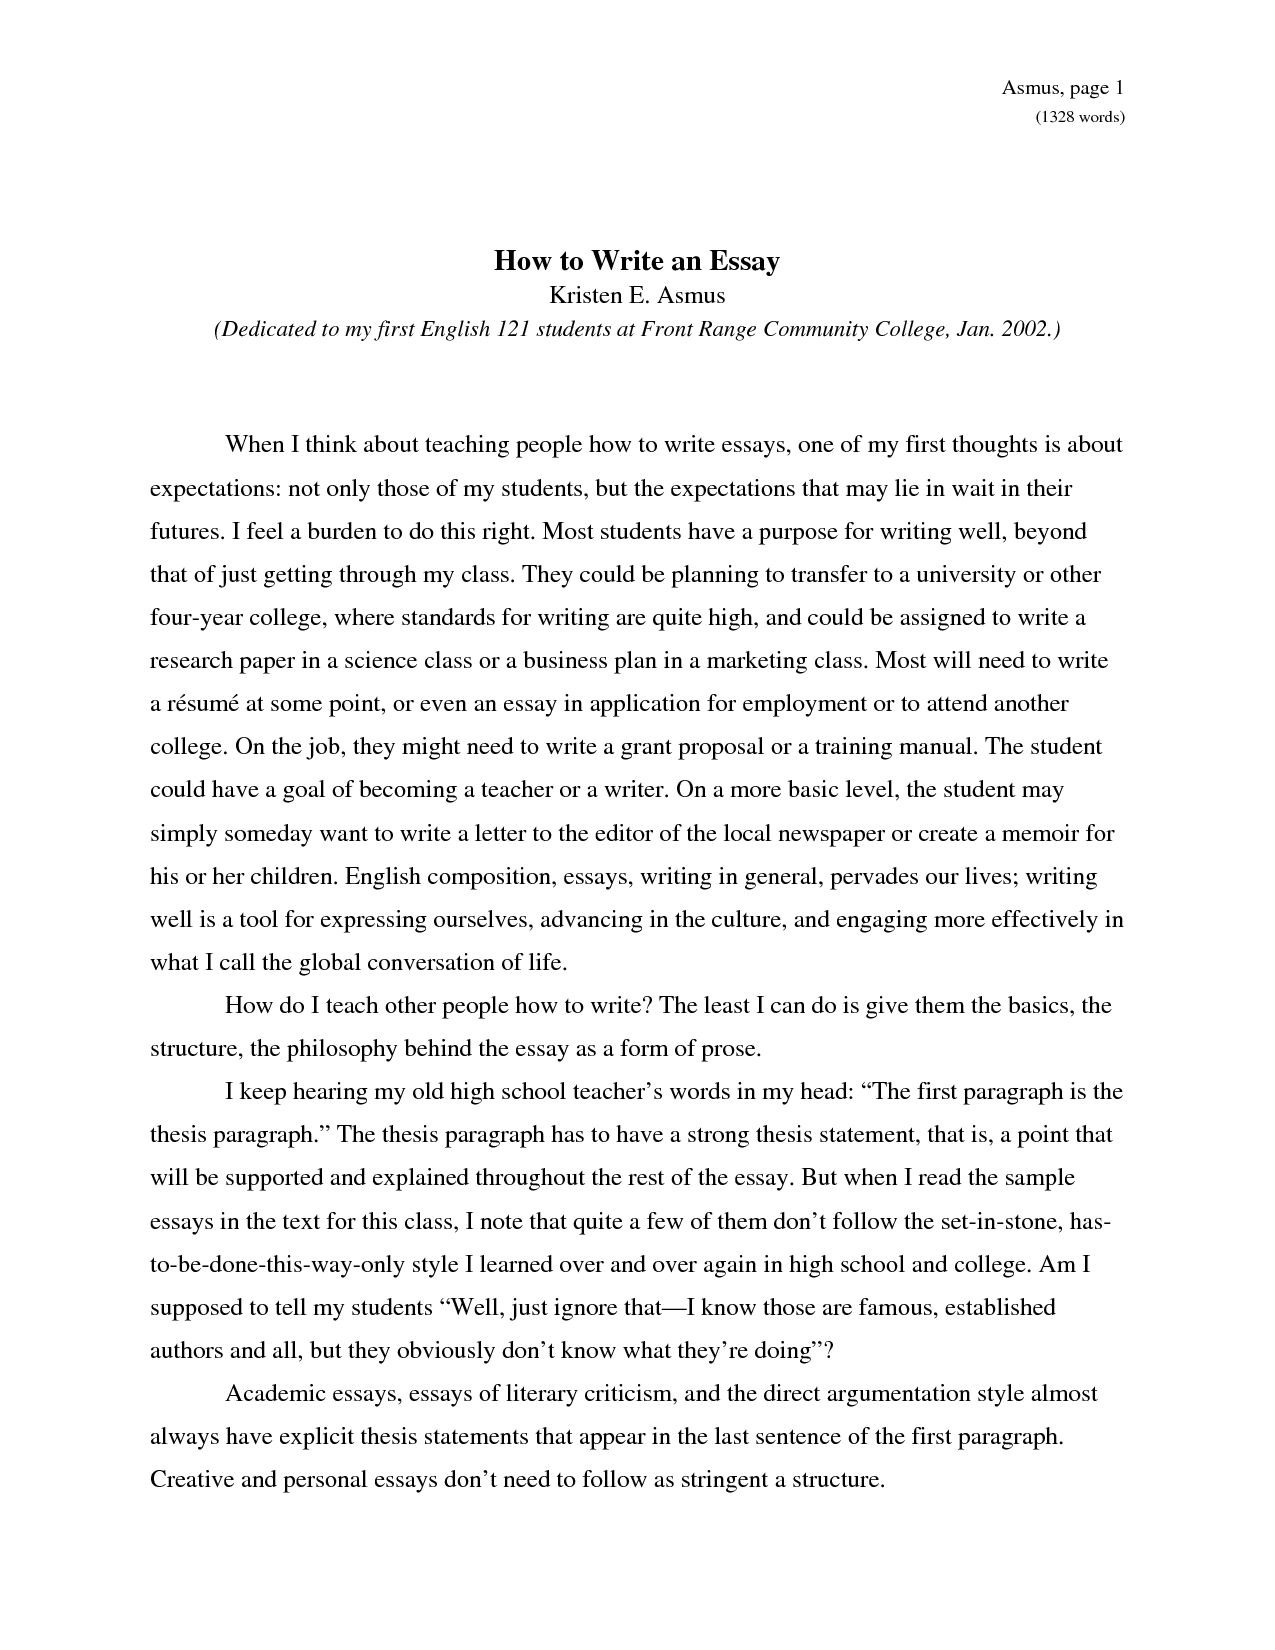 How can write essay